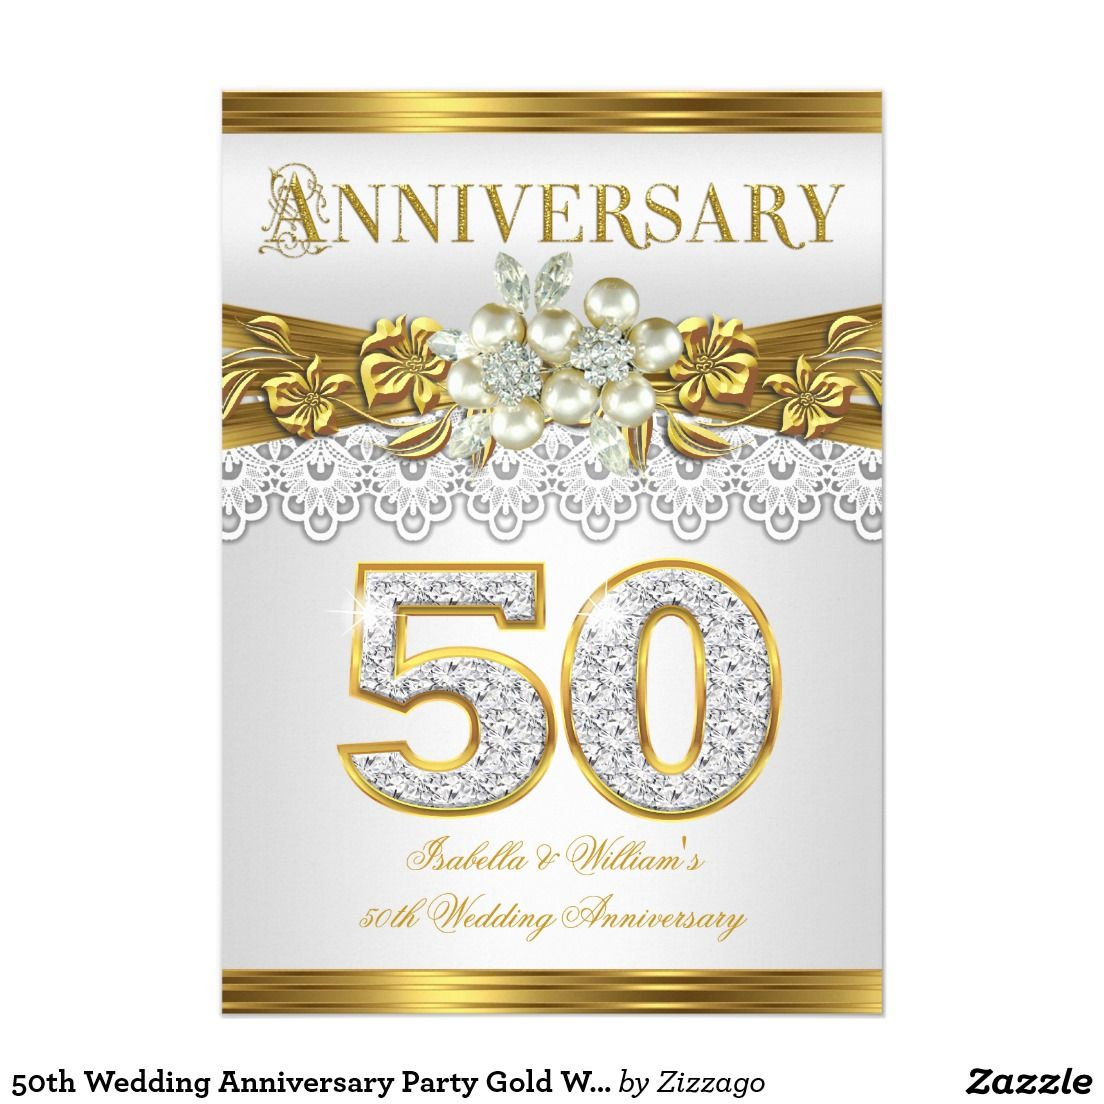 50th wedding anniversary party gold white pearl 5x7 paper invitation 50th wedding anniversary party gold white pearl 5x7 paper invitation card stopboris Image collections